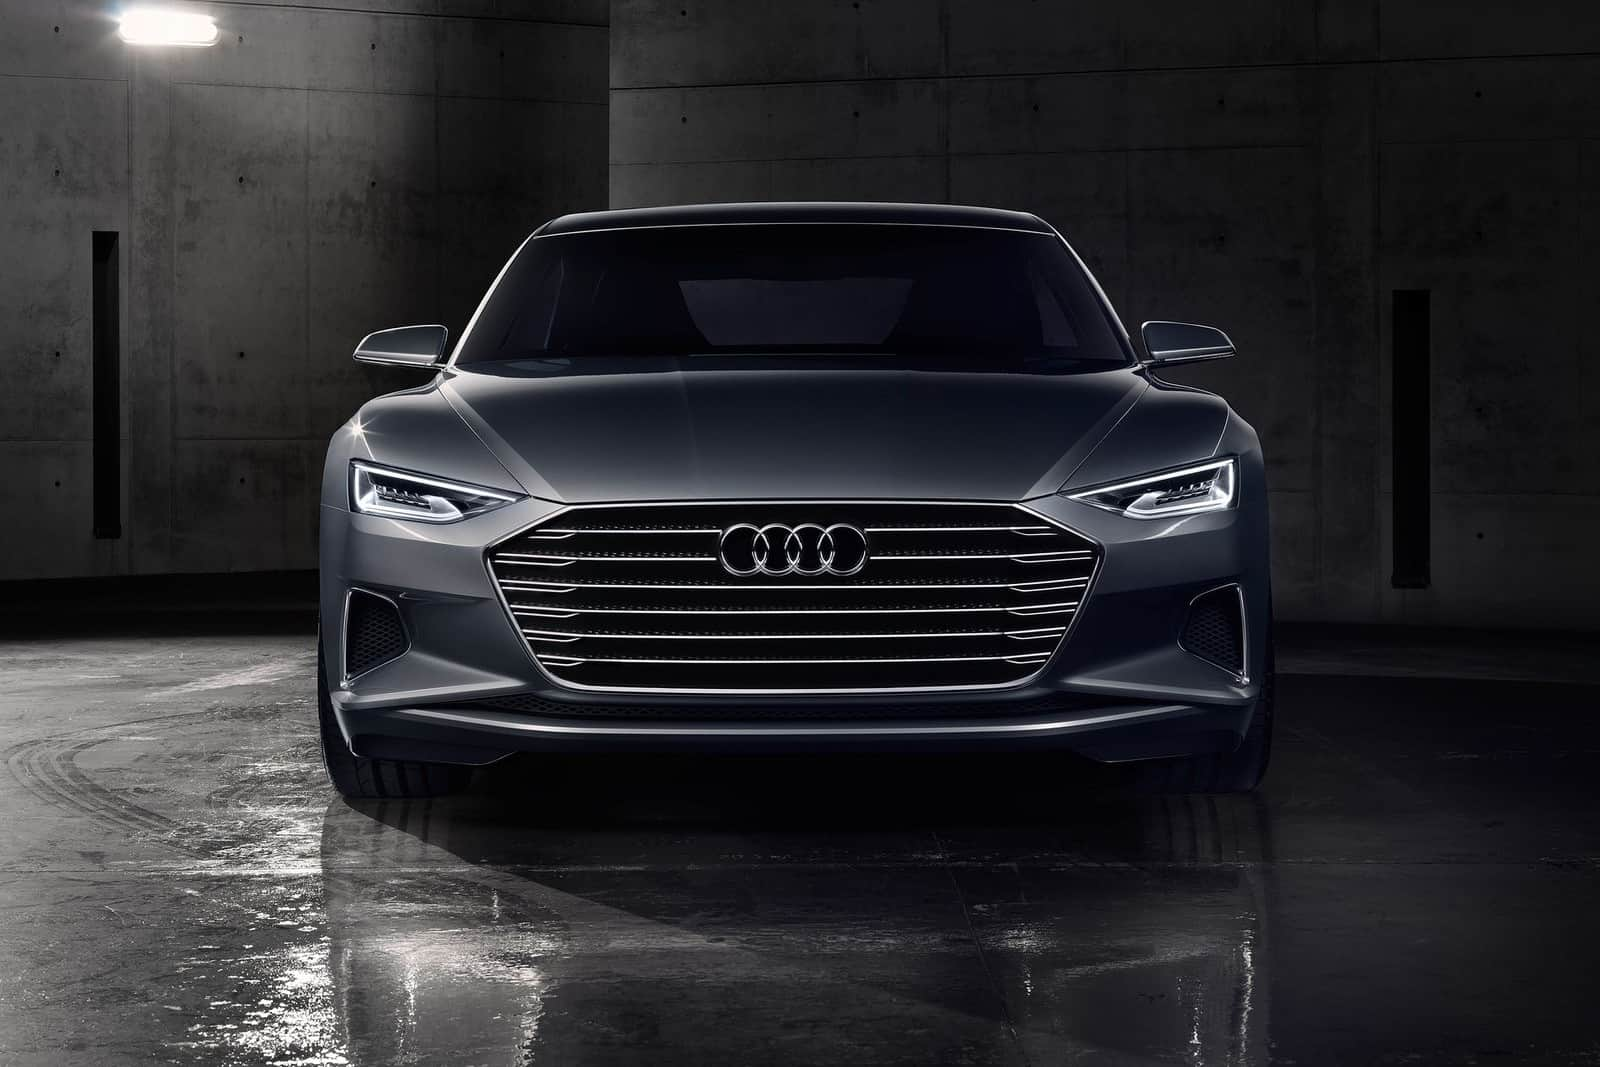 Audi-Prologue_Concept_2014_1600x1200_wallpaper_08